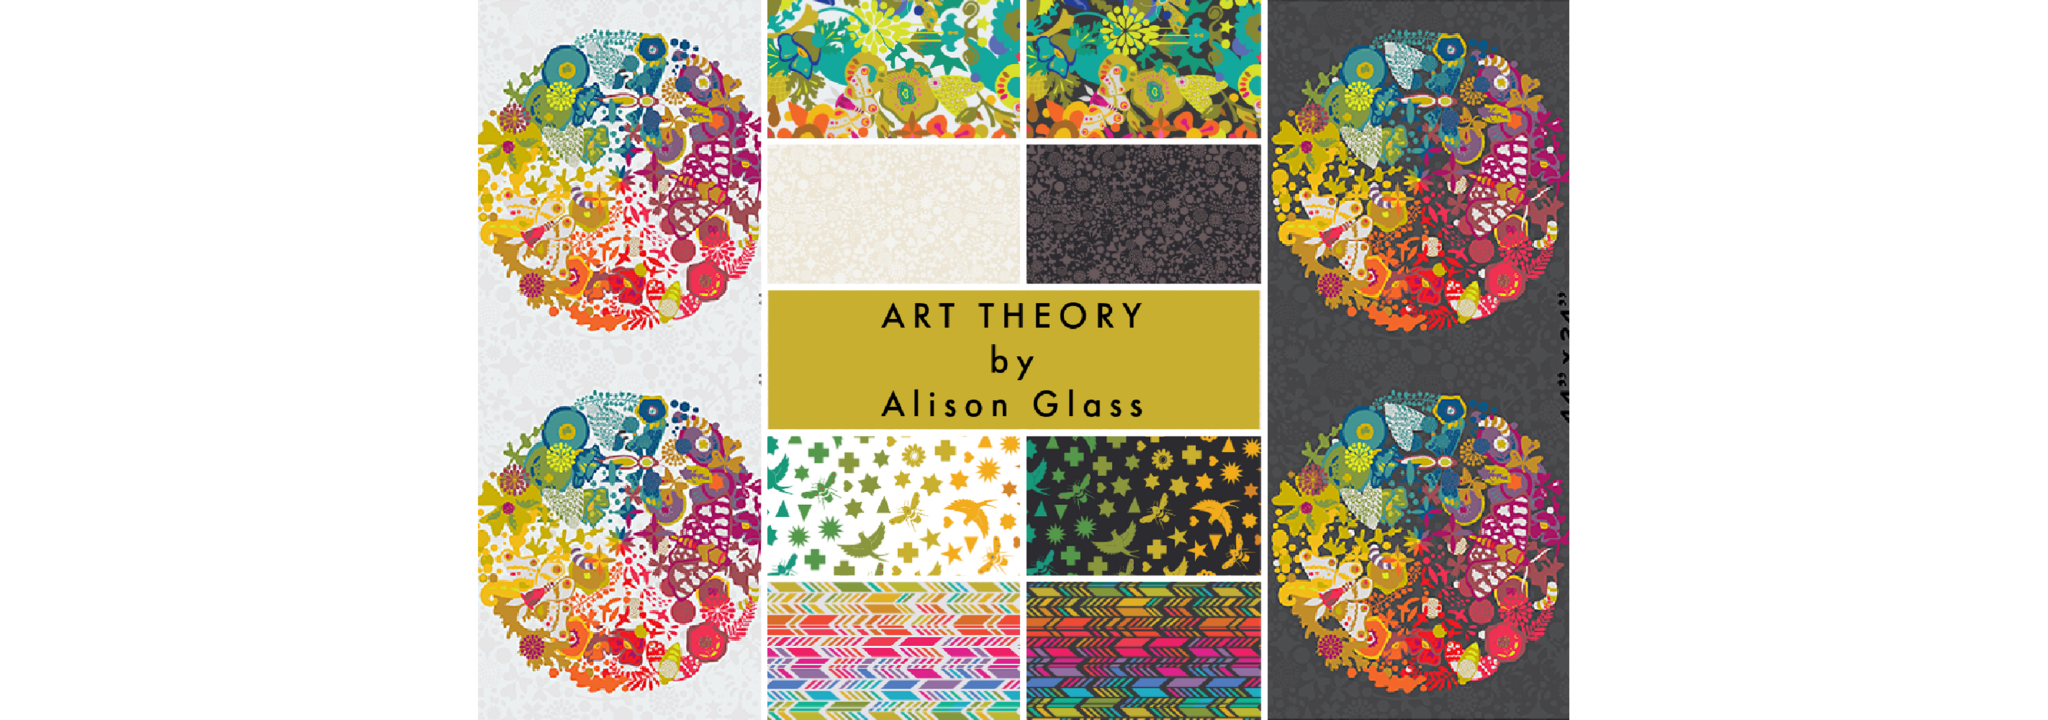 Art Theory by Alison Glass